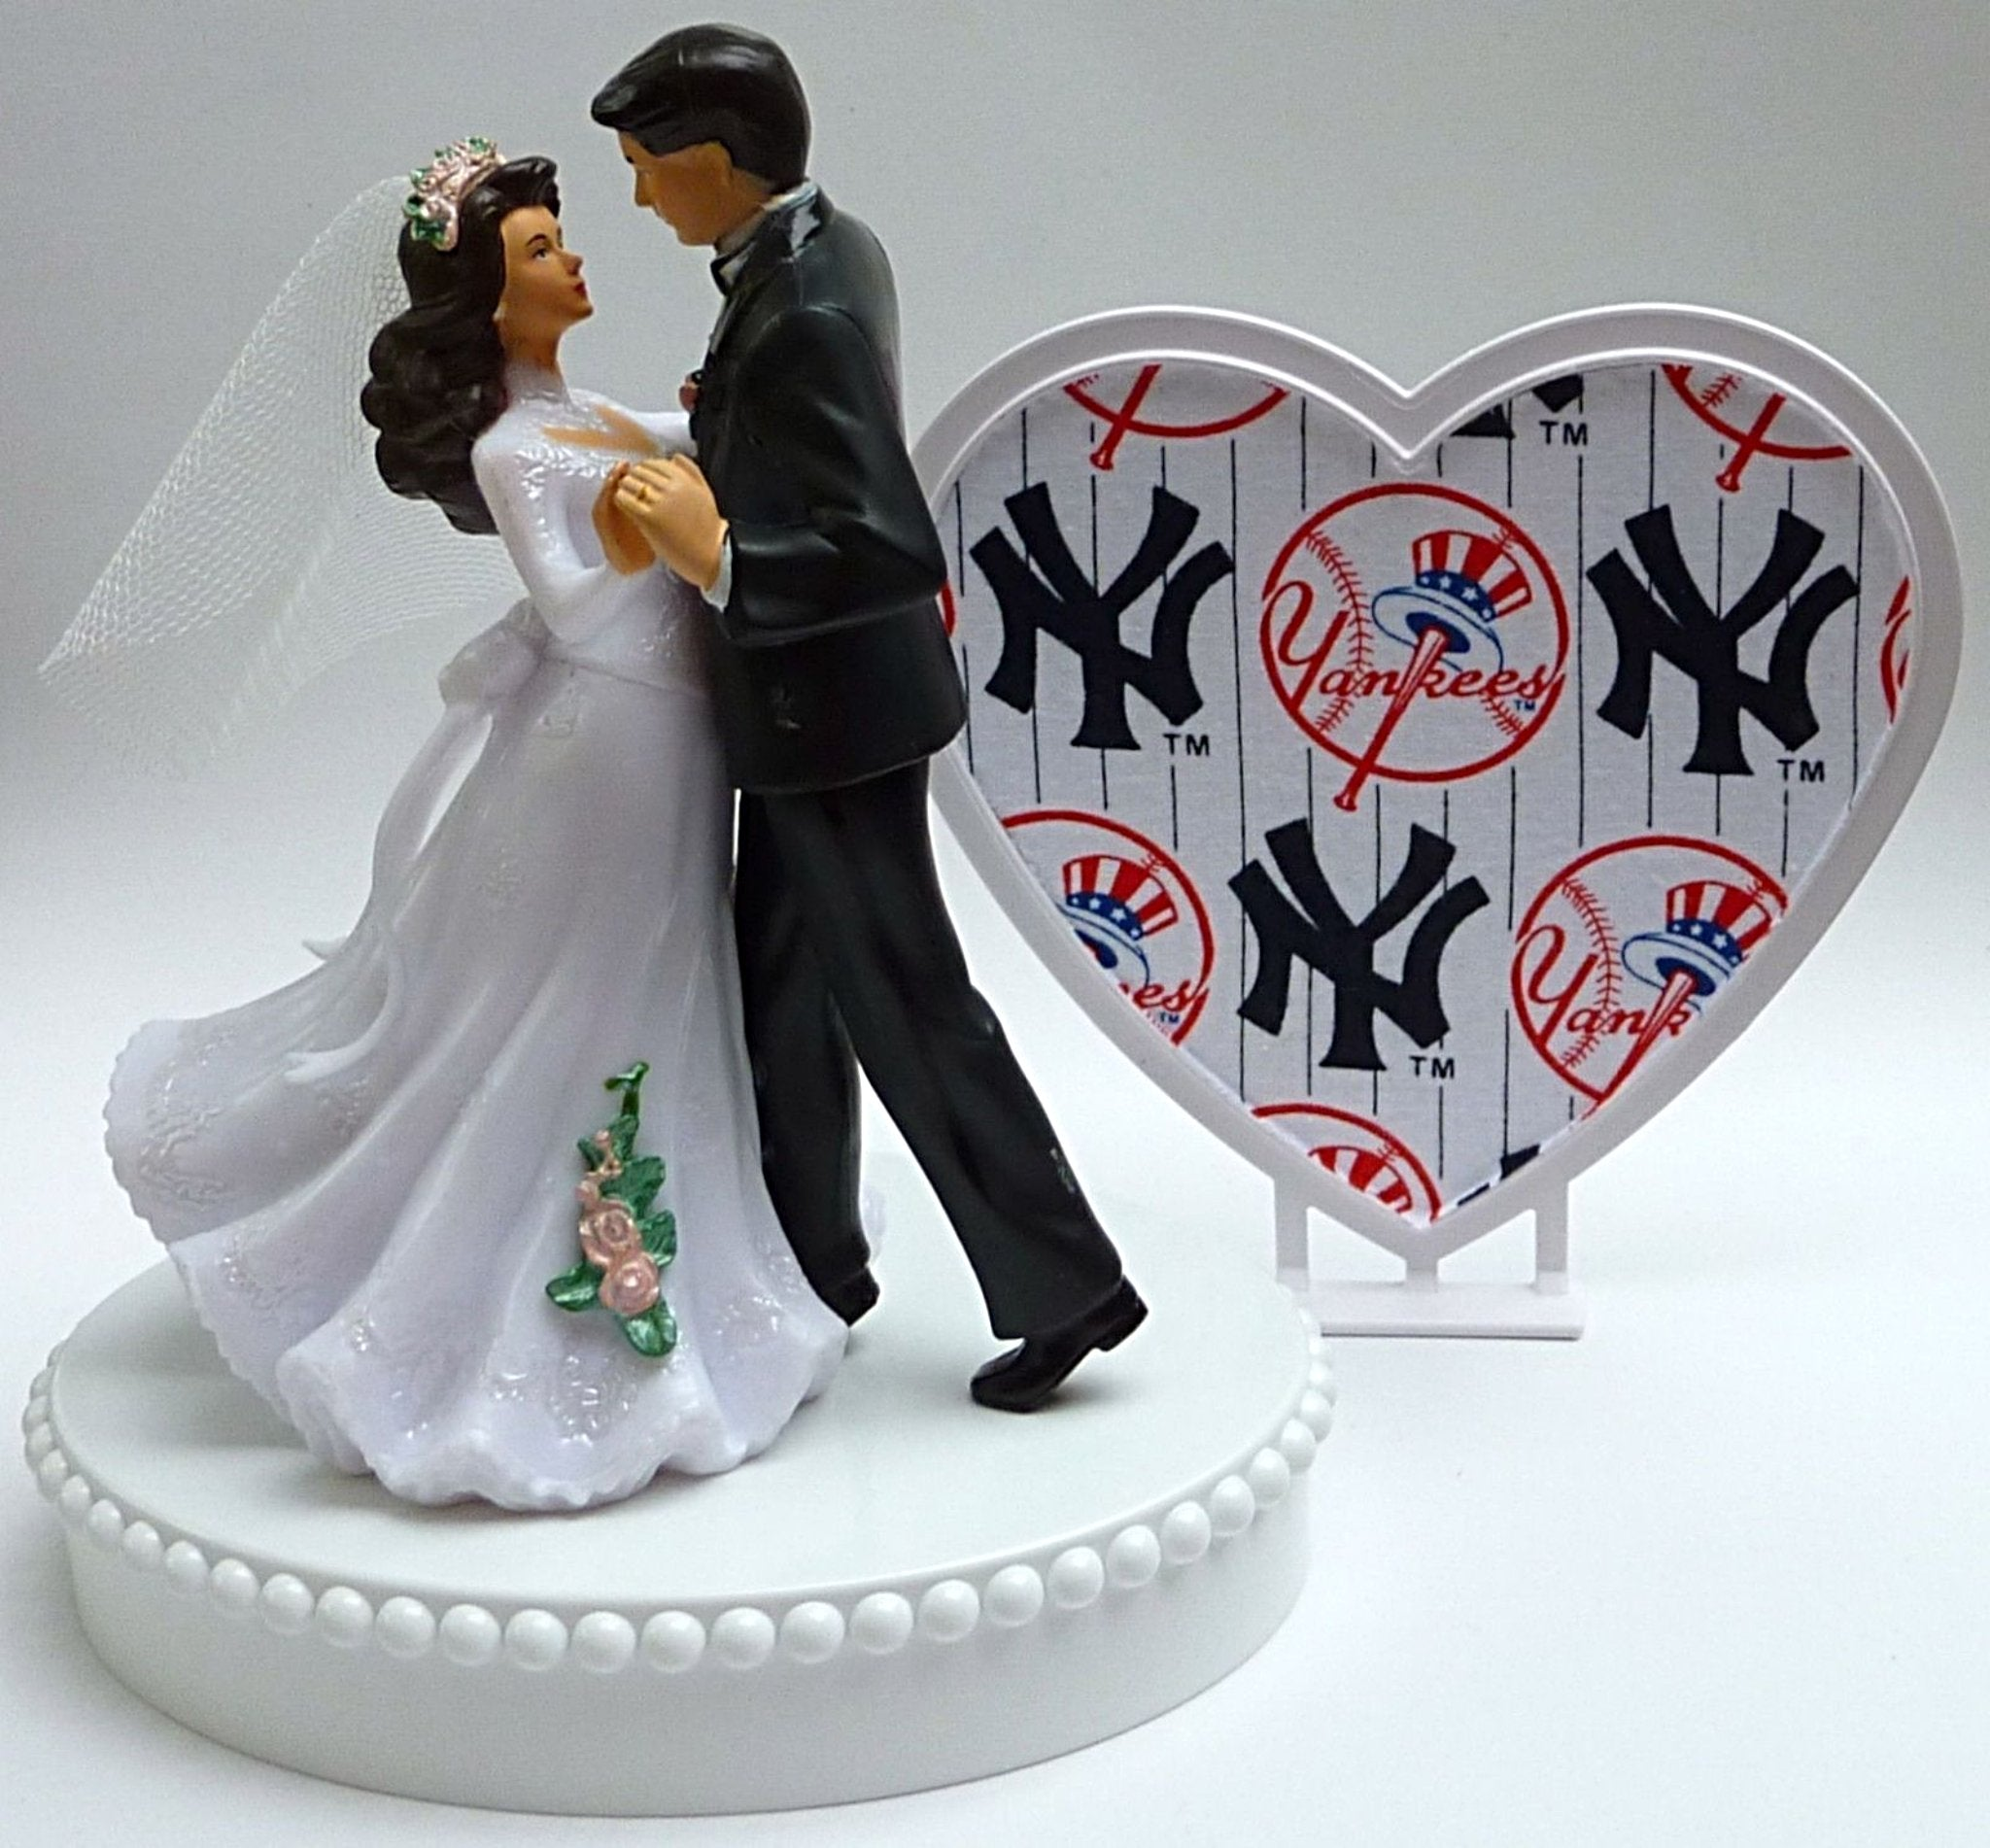 NY Yankees cake topper wedding New York baseball fans sports Fun Wedding Things bride groom dancing pretty heart